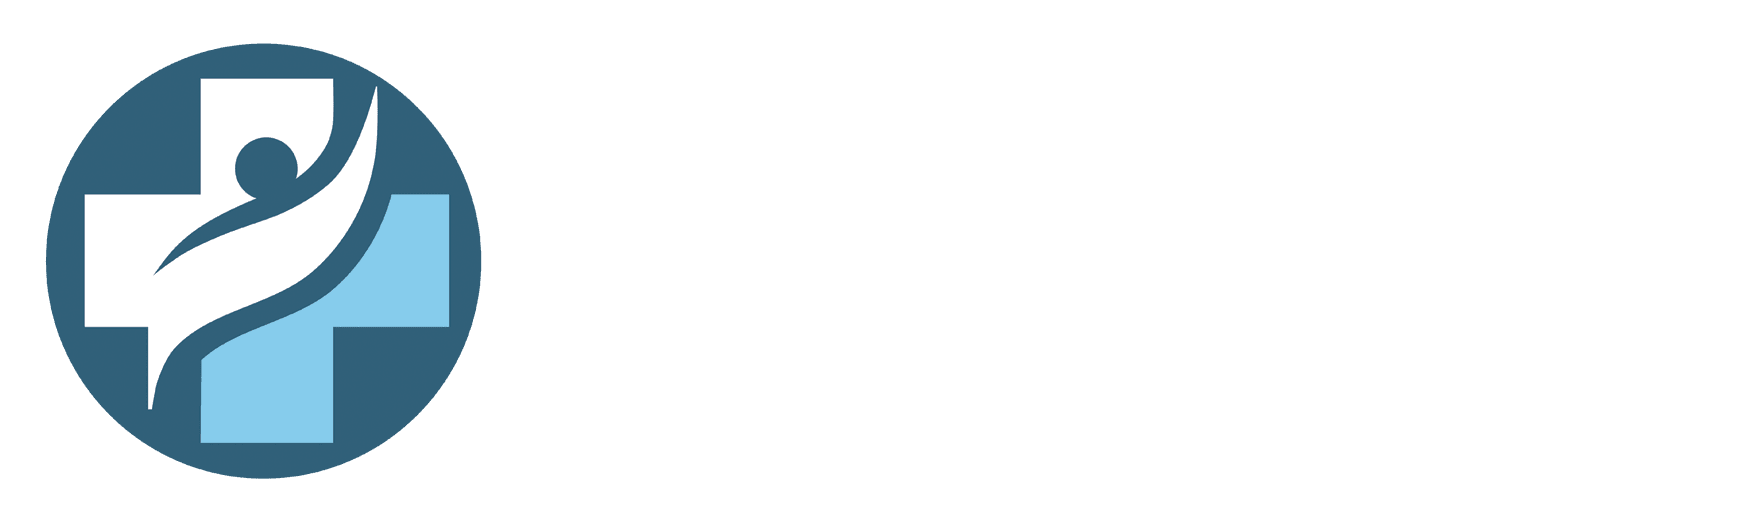 Silicon-Valley-Medical-Group